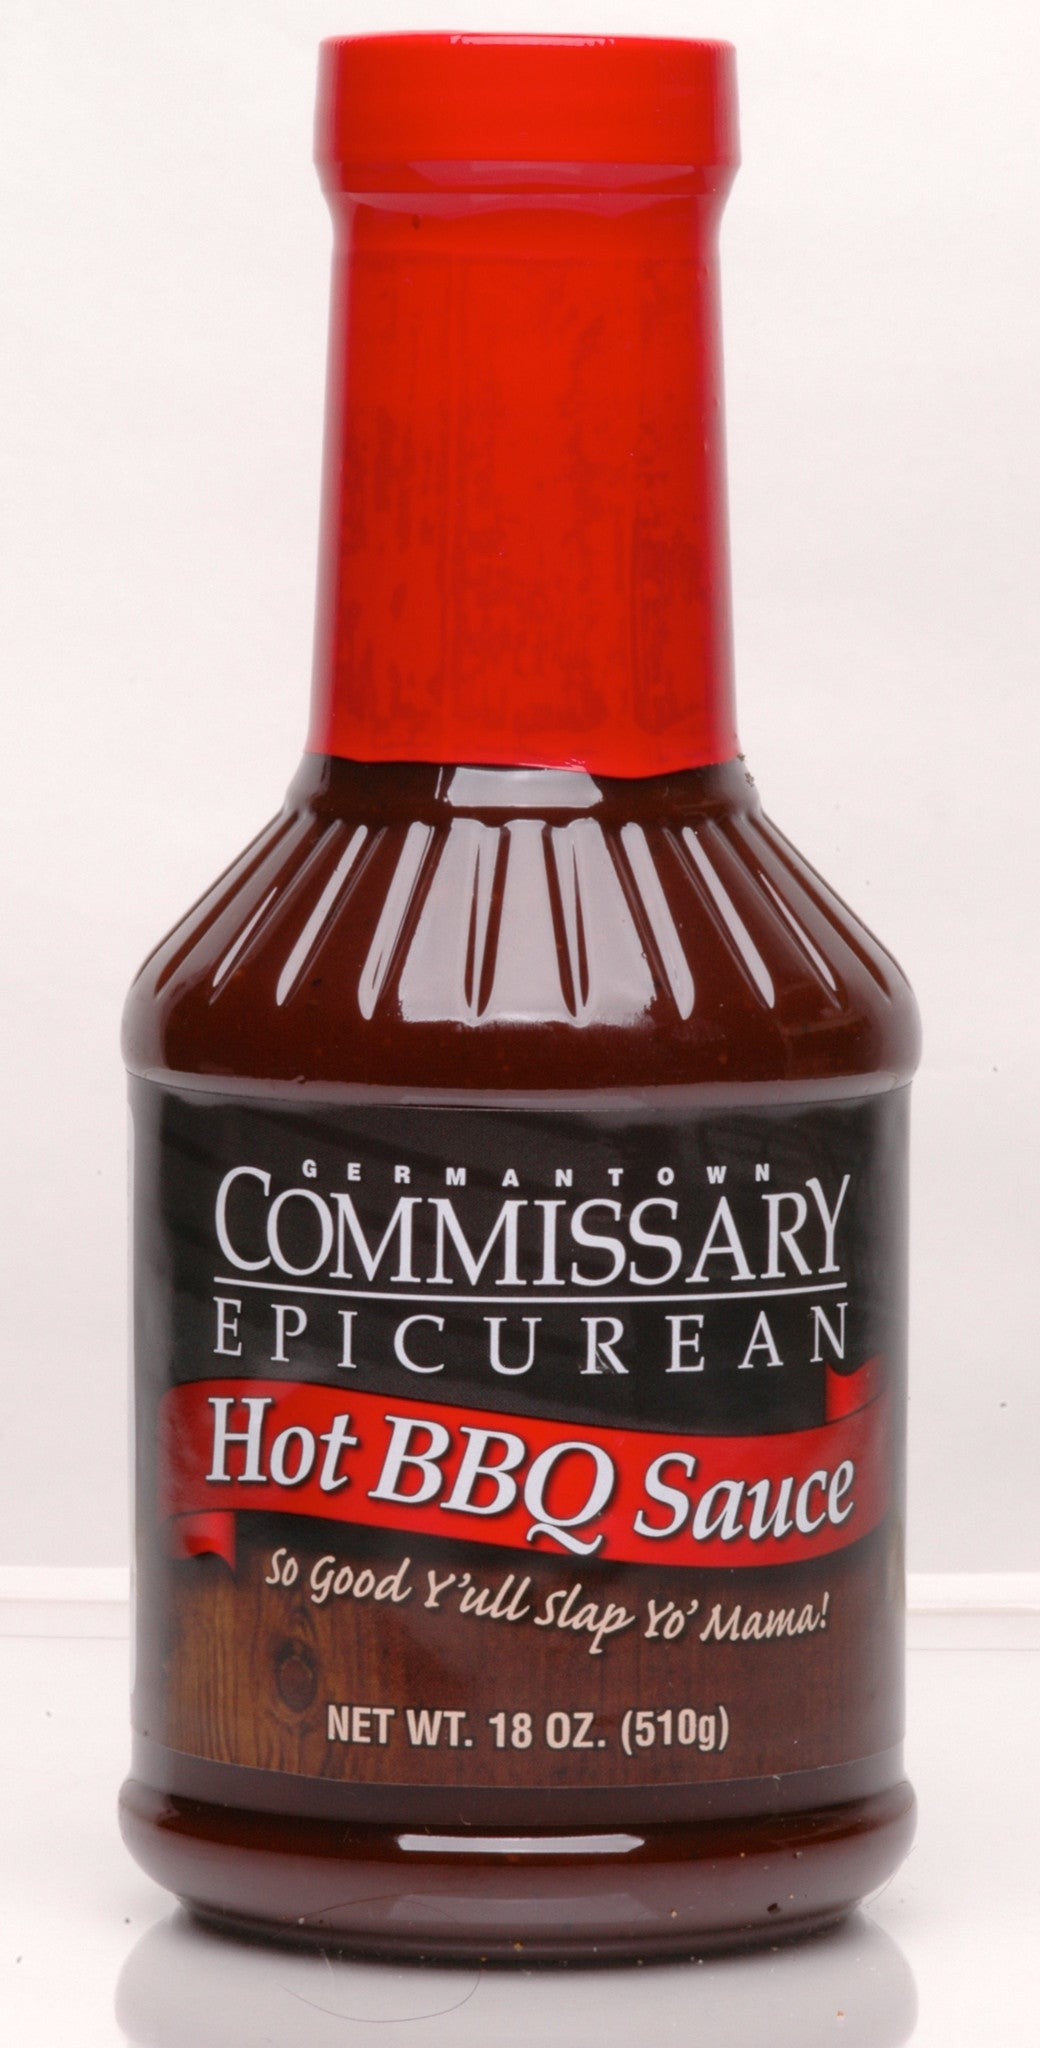 Germantown Commissary Hot BBQ Sauce